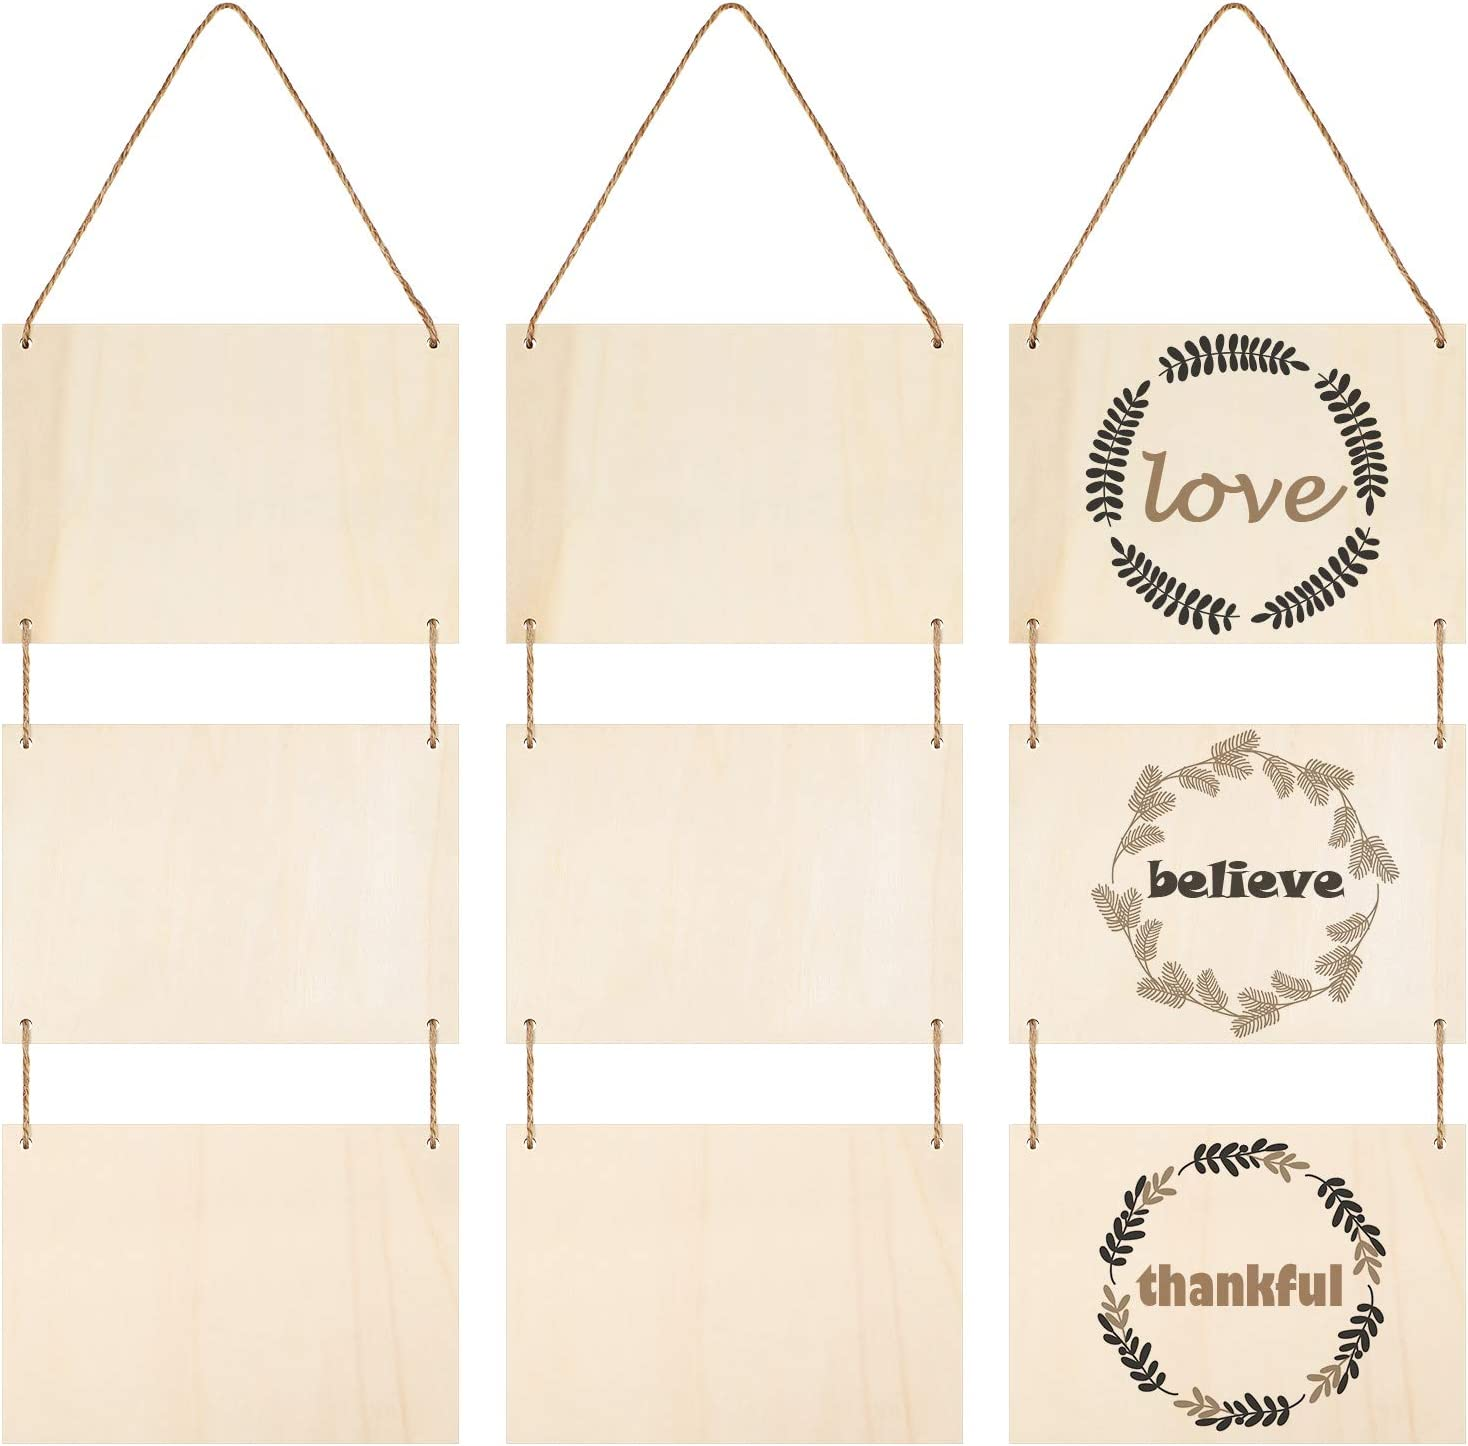 Black 10 Pieces Unfinished Hanging Wood Sign Rectangle Blank Wooden Plaque Blank Hanging Wooden Slices Banners with Ropes for Pyrography Painting Writing DIY Home Crafts Supplies